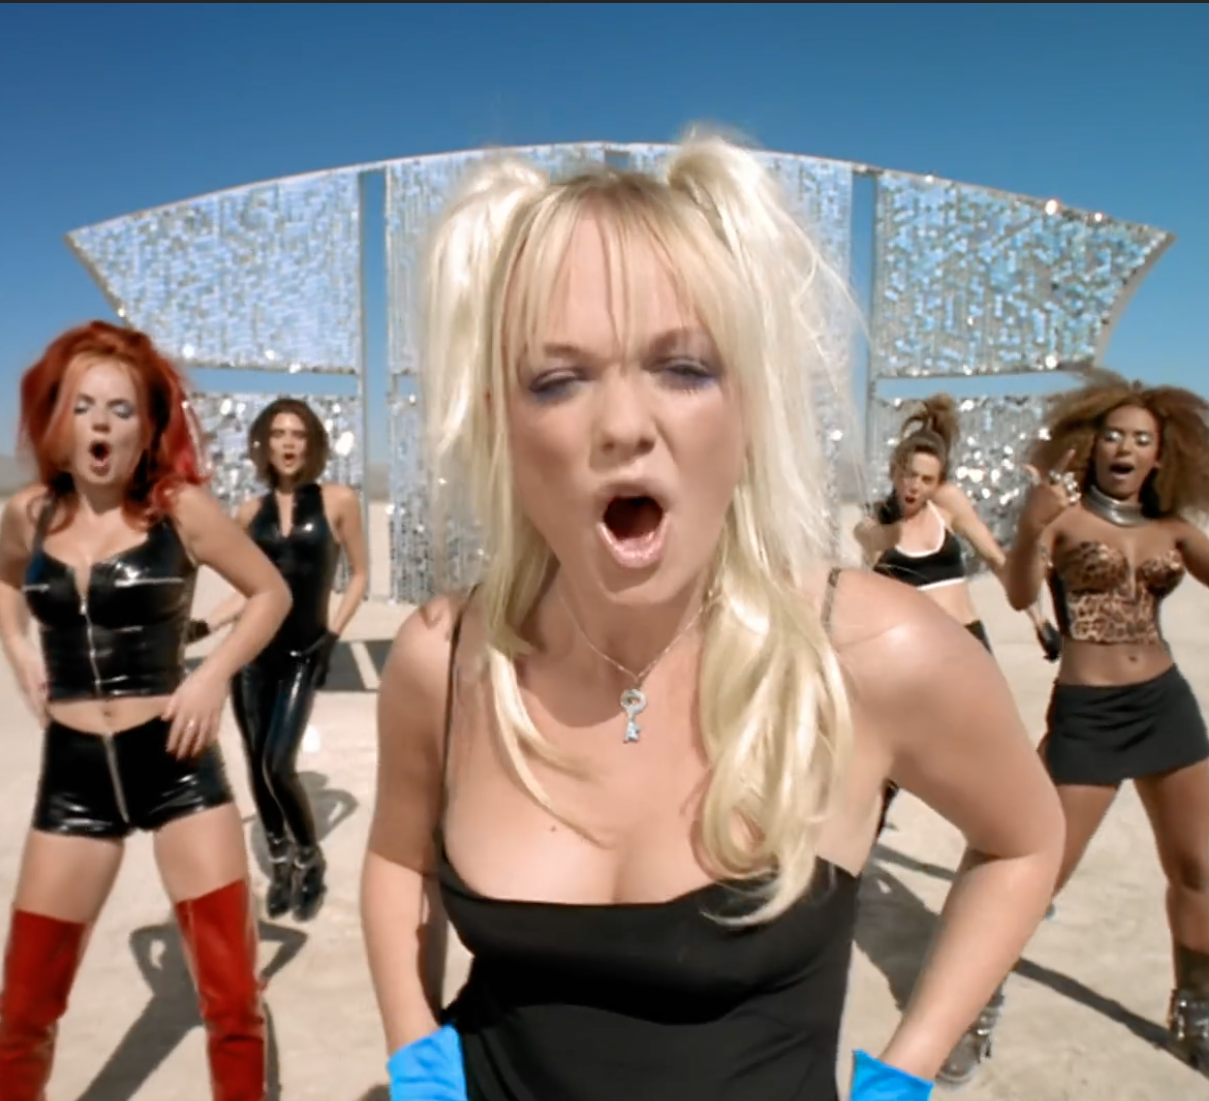 Screenshot 2021 06 18 at 10.15.04 e1624007743202 Zig-A-Zig-Ah! It's 25 Fascinating Facts About The Spice Girls!